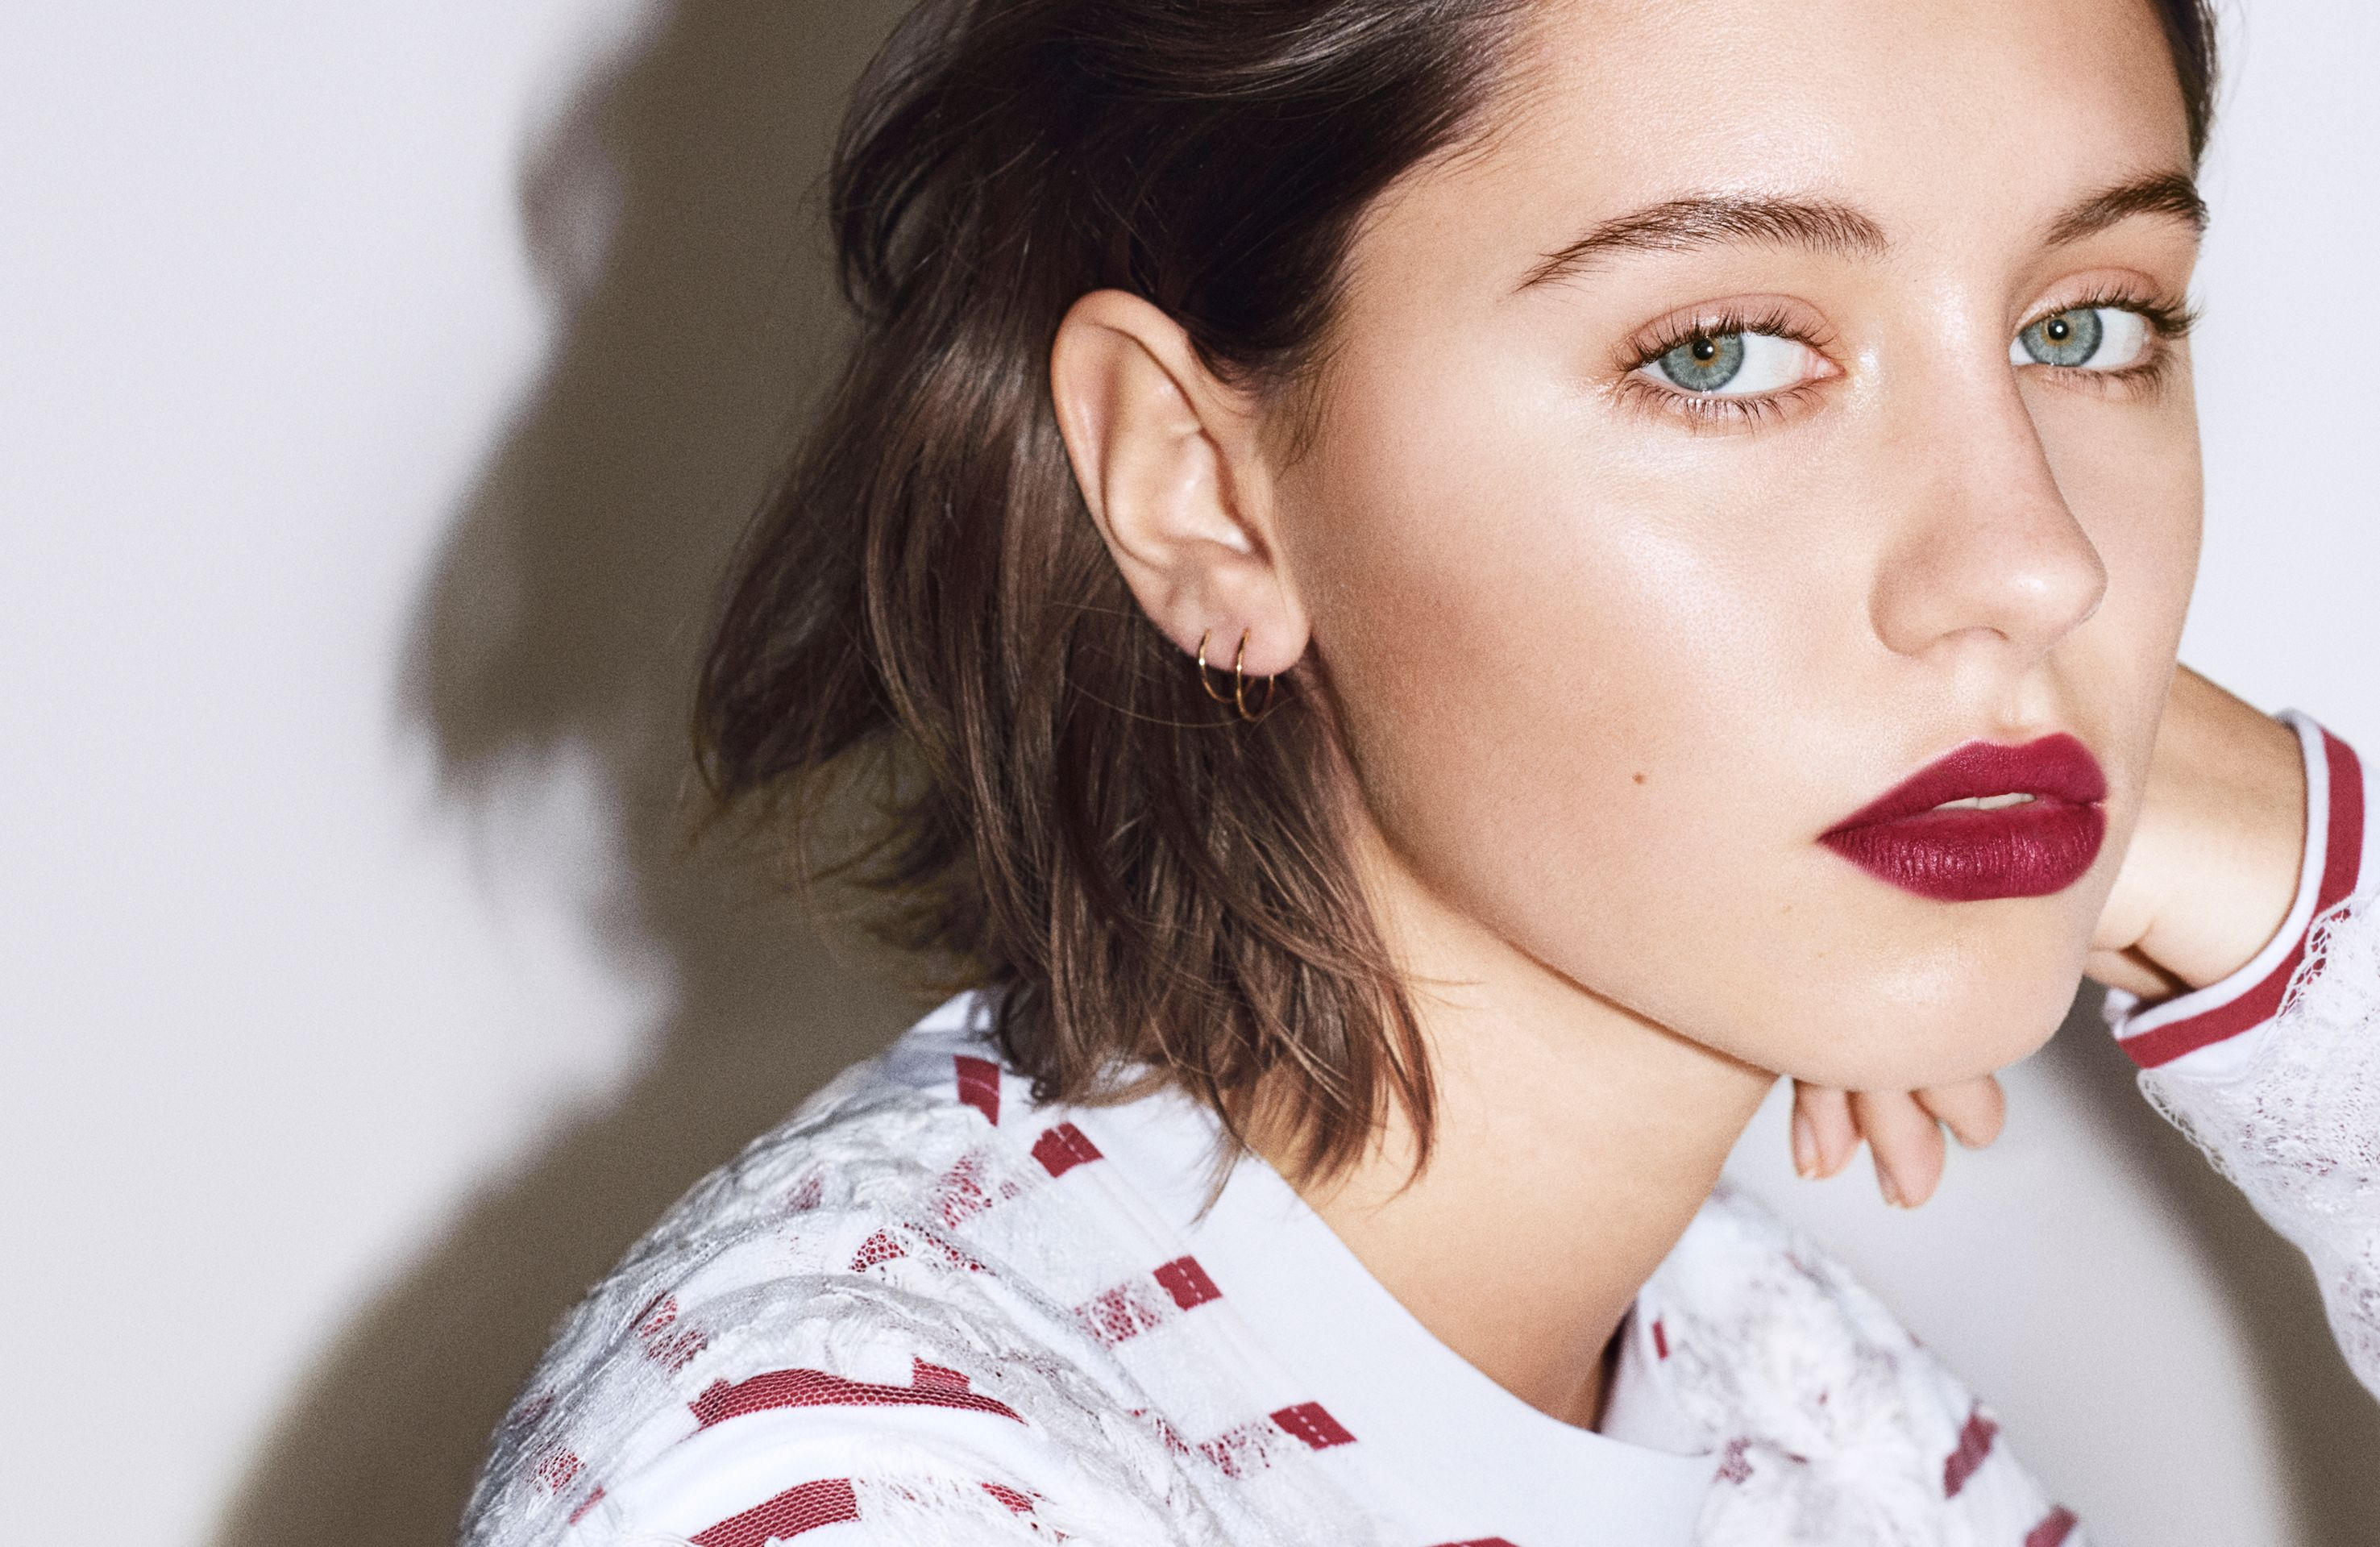 Jude Law's Daughter Is the New Face of Burberry Beauty